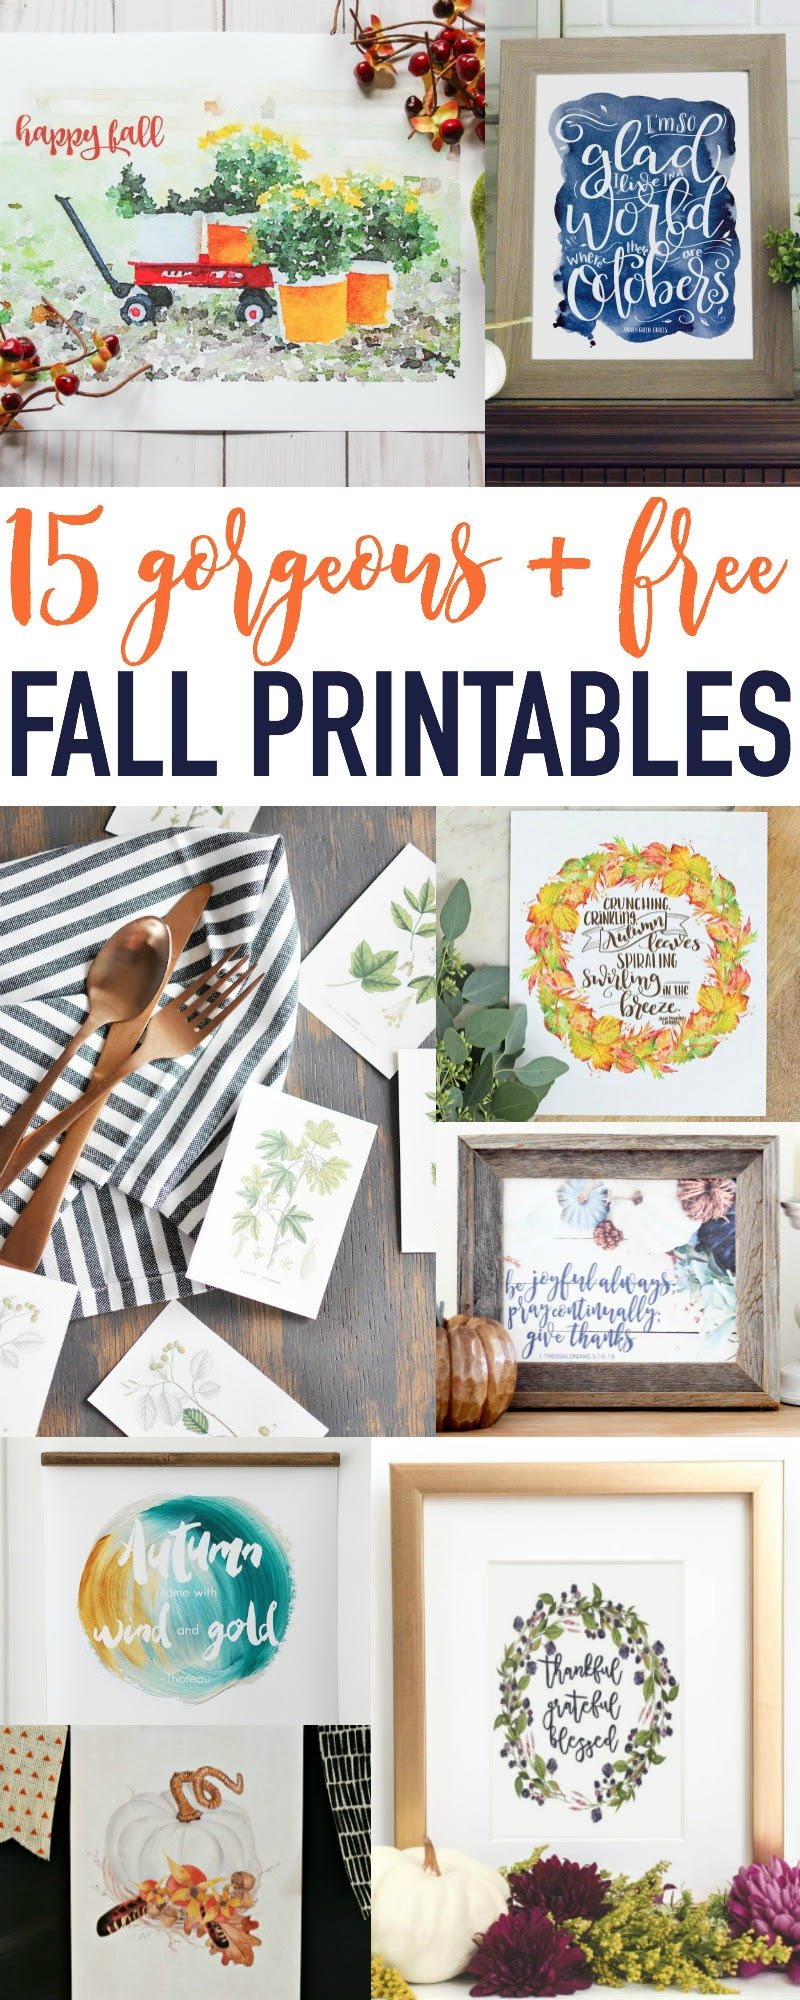 15 Gorgeous Free Fall Printables